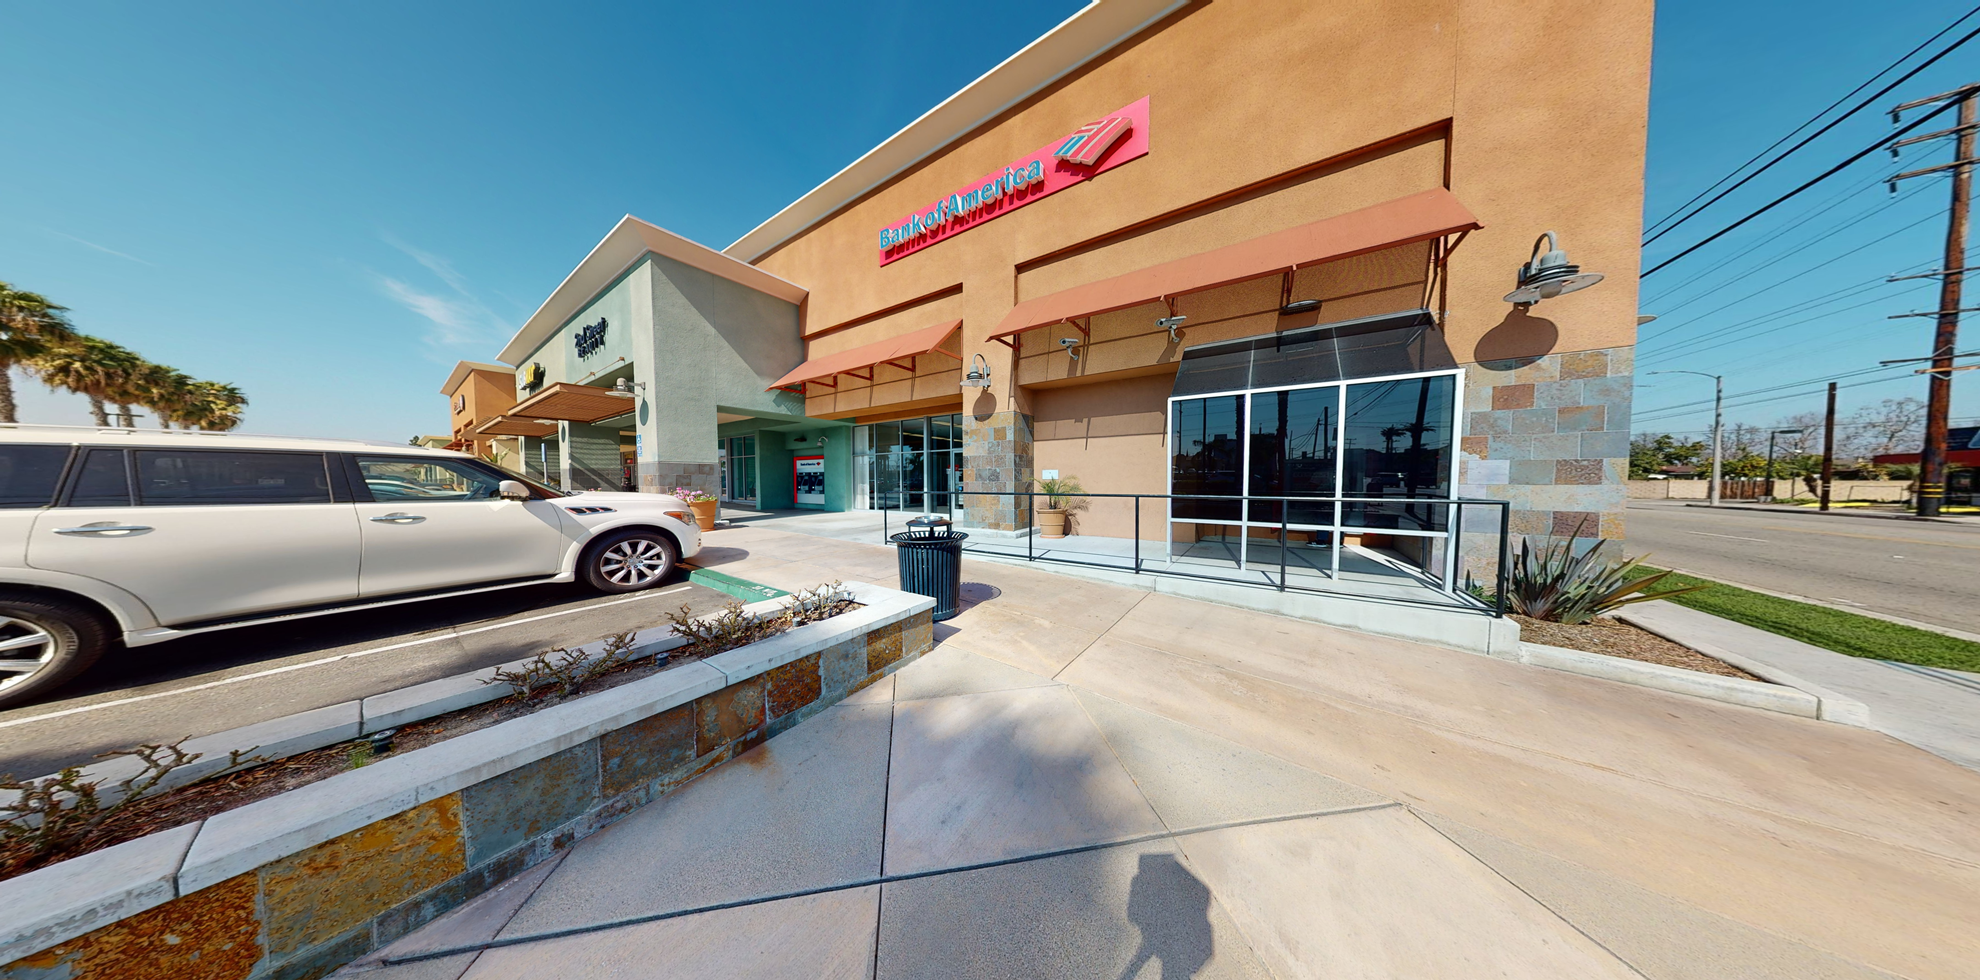 Bank of America financial center with walk-up ATM   6351 E Spring St, Long Beach, CA 90808